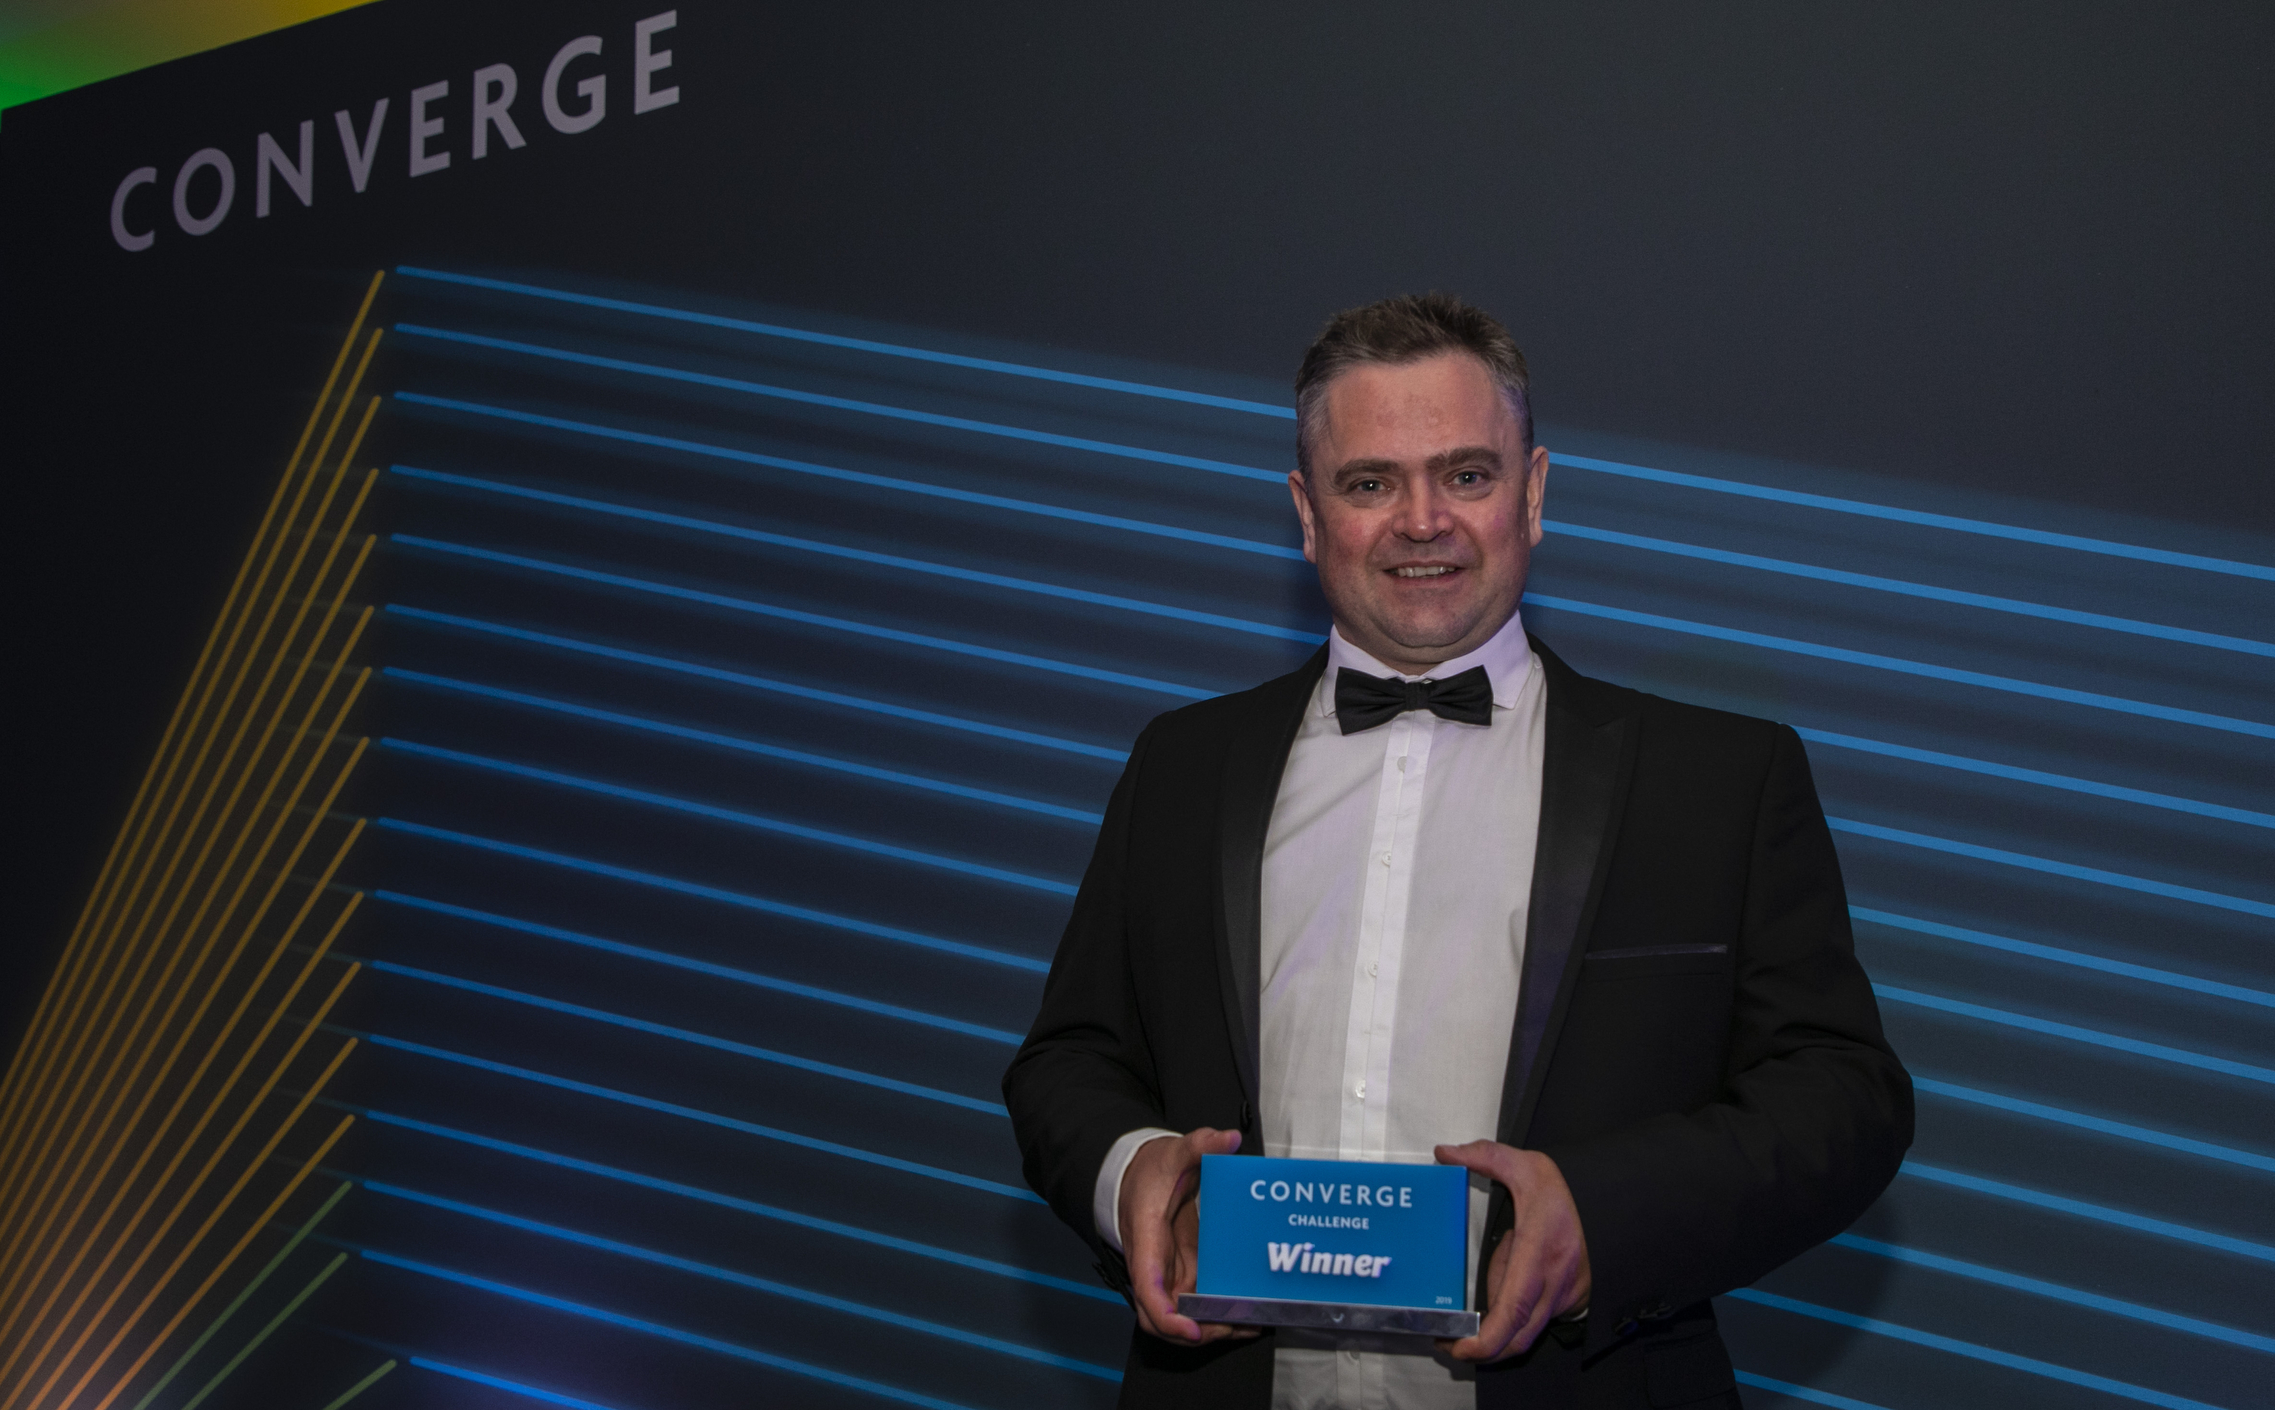 Andrew Woodland with his award